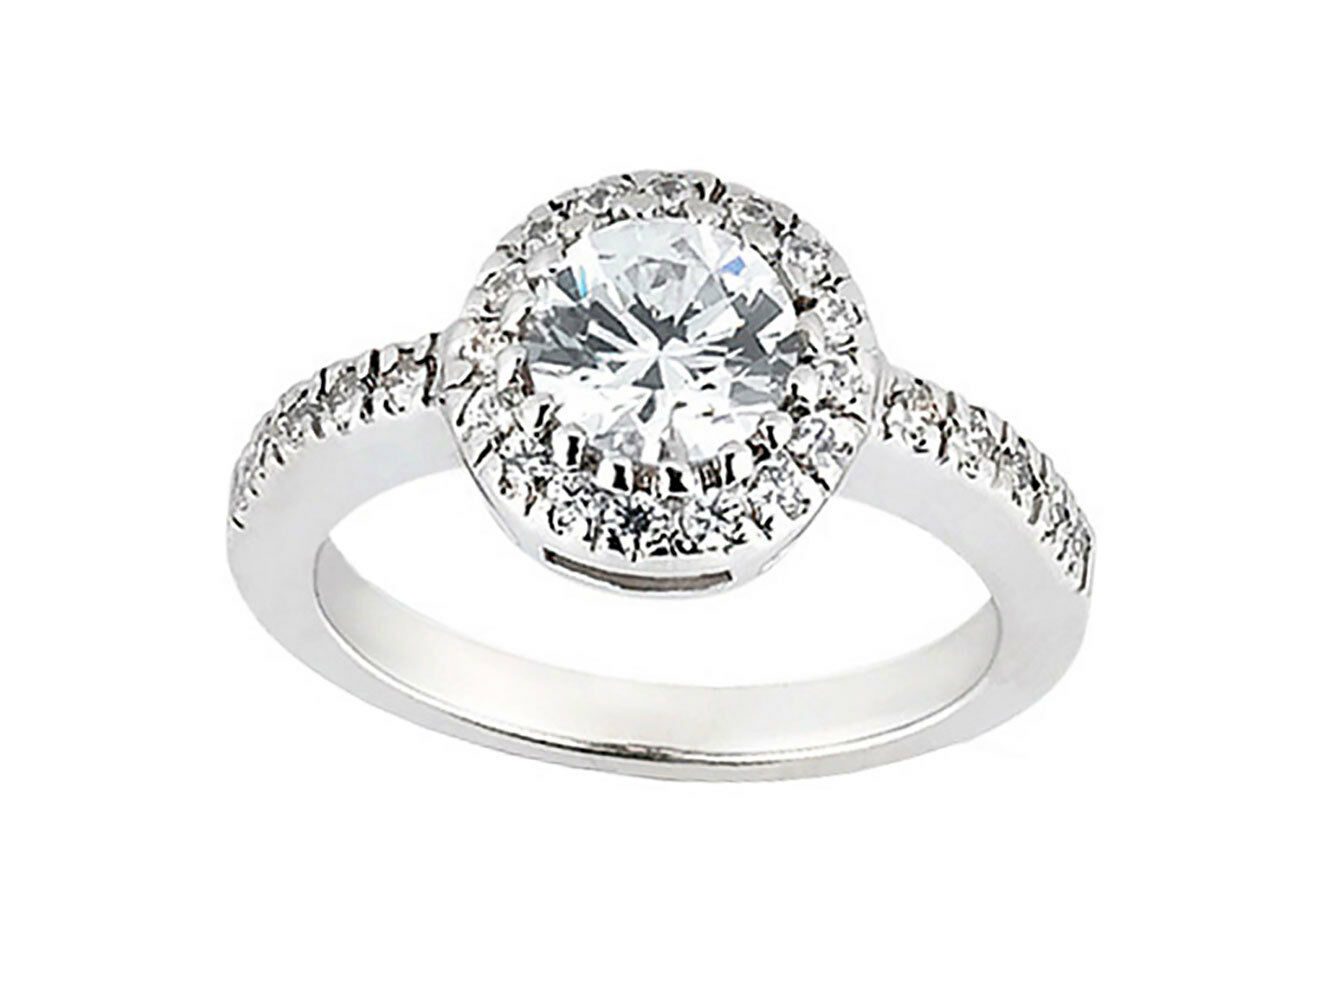 1.00ct Round Cut Diamond Halo Bridal Engagement Ring Solid 10k gold GH I1